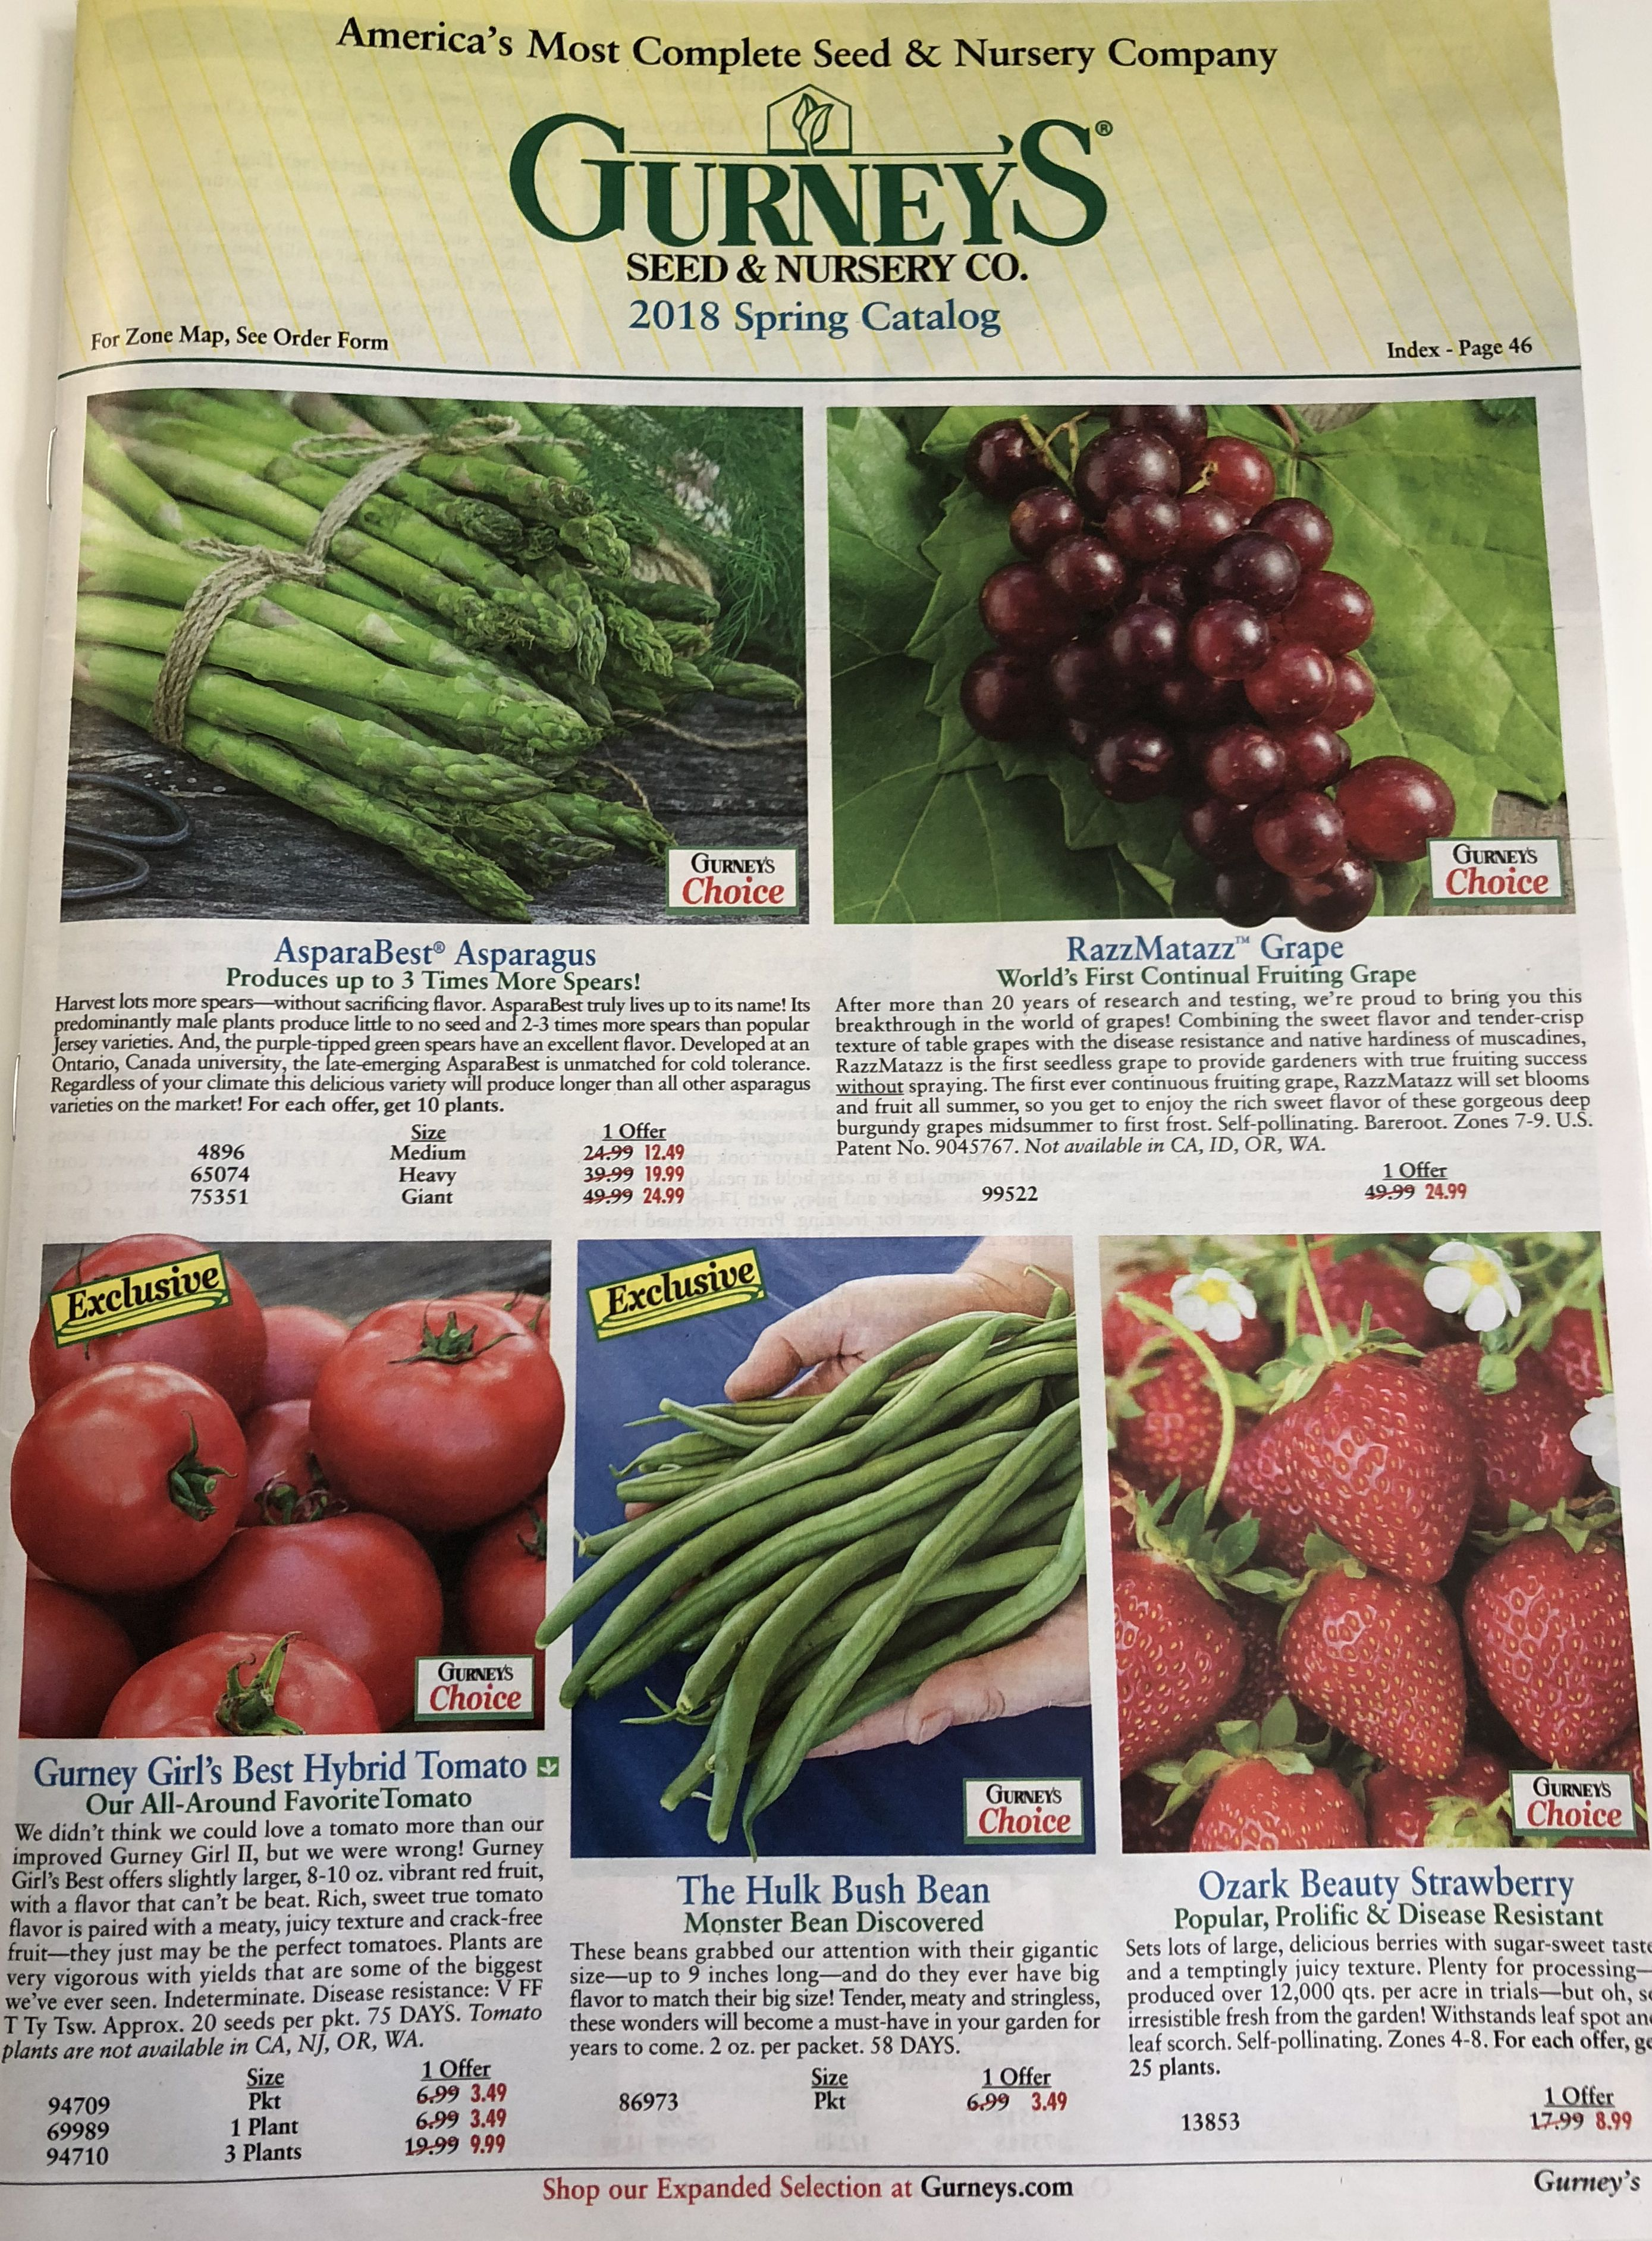 The cover of the 2018 Gurney's seed catalog